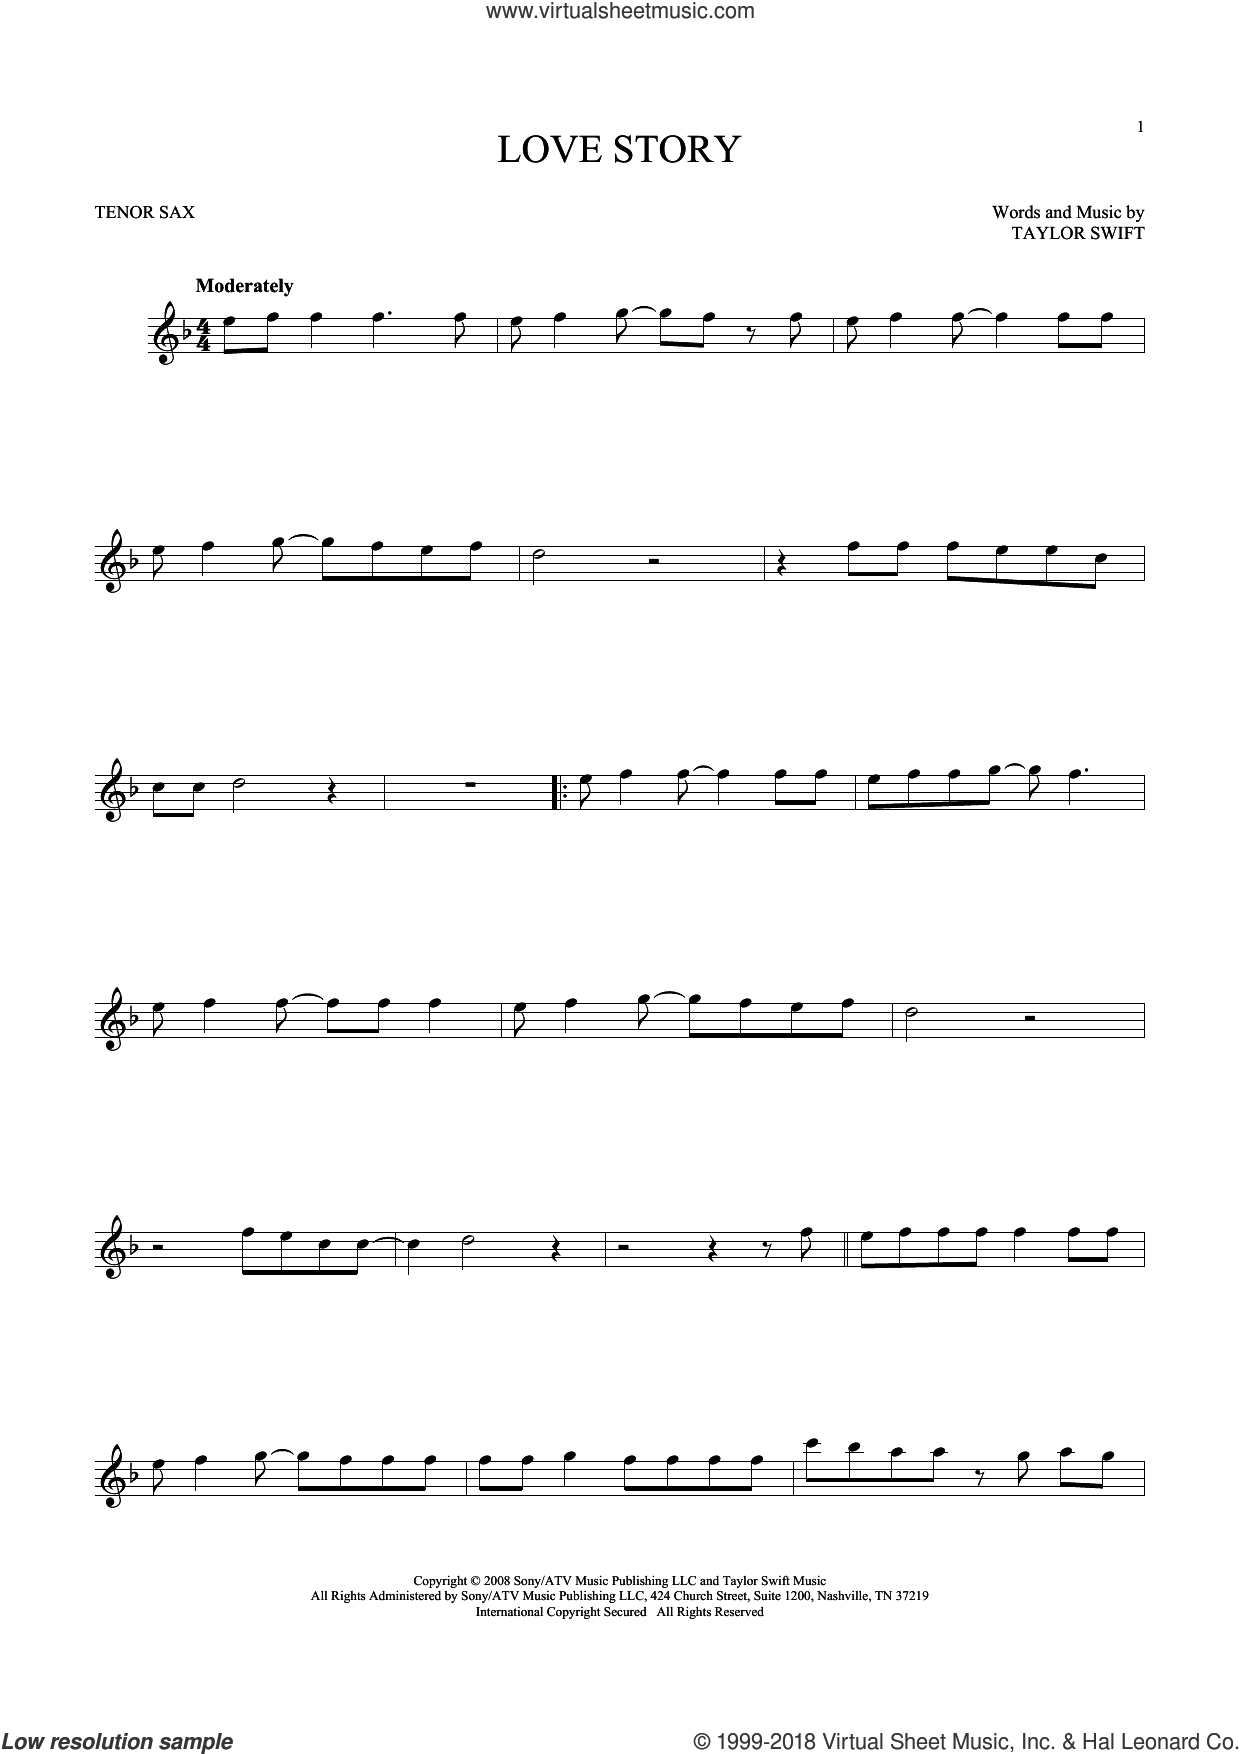 Love Story sheet music for tenor saxophone solo by Taylor Swift, intermediate skill level